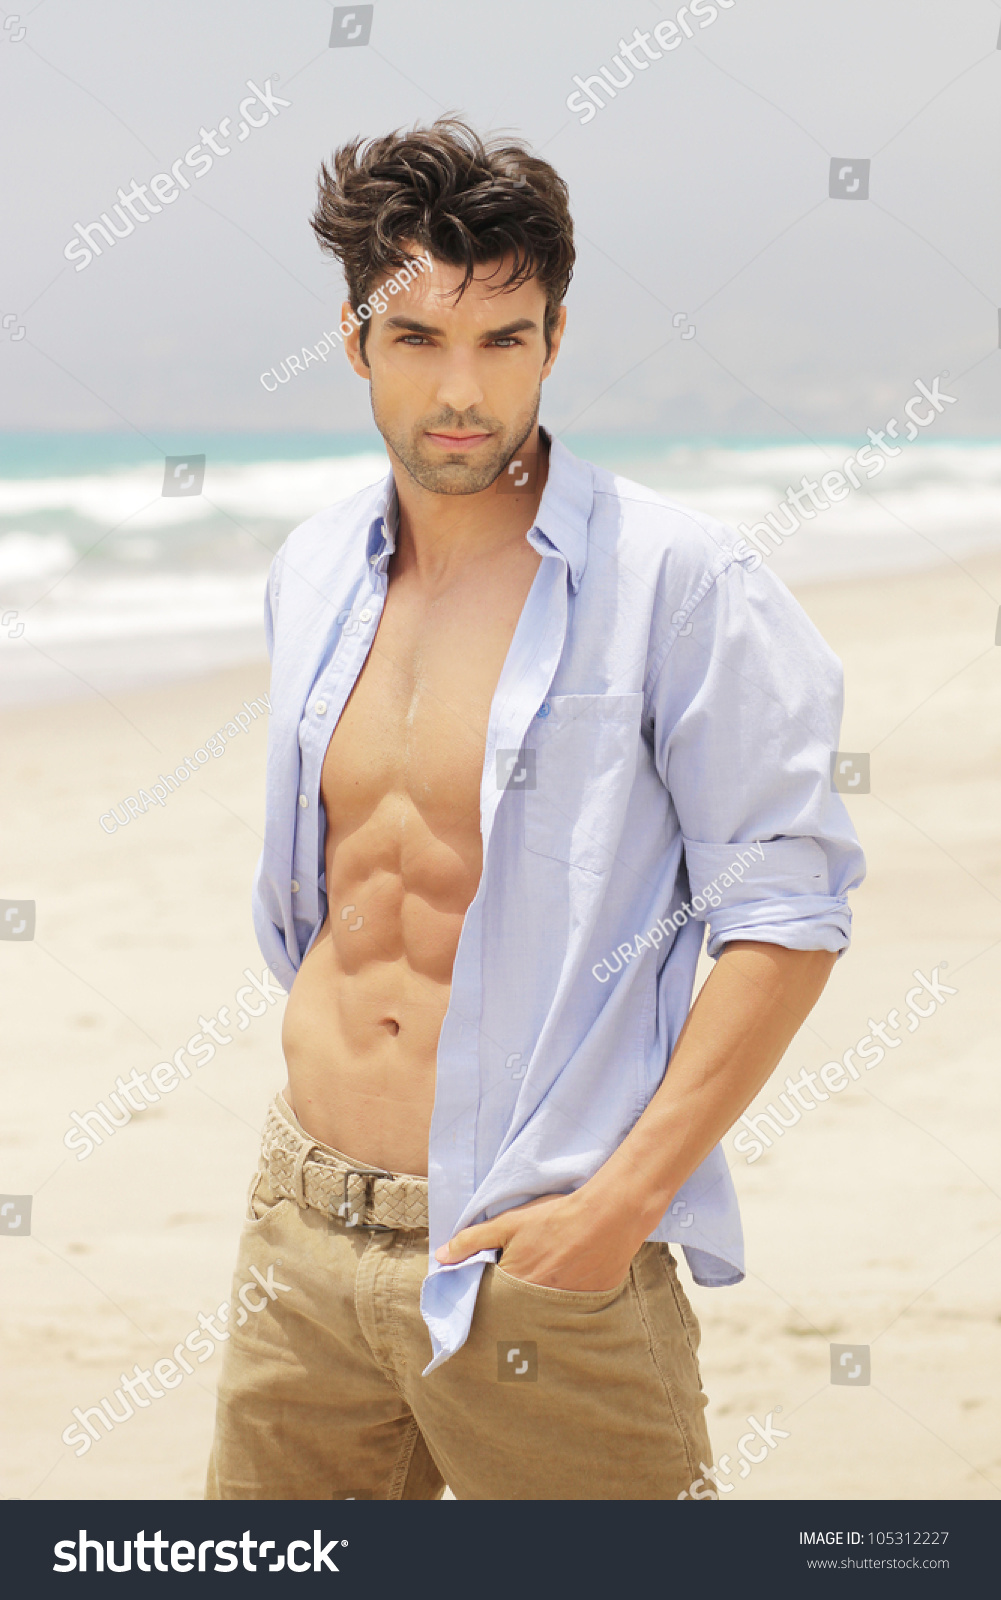 Goodlooking man on beach open shirt stock photo 105312227 for This guy has an awesome girlfriend shirt